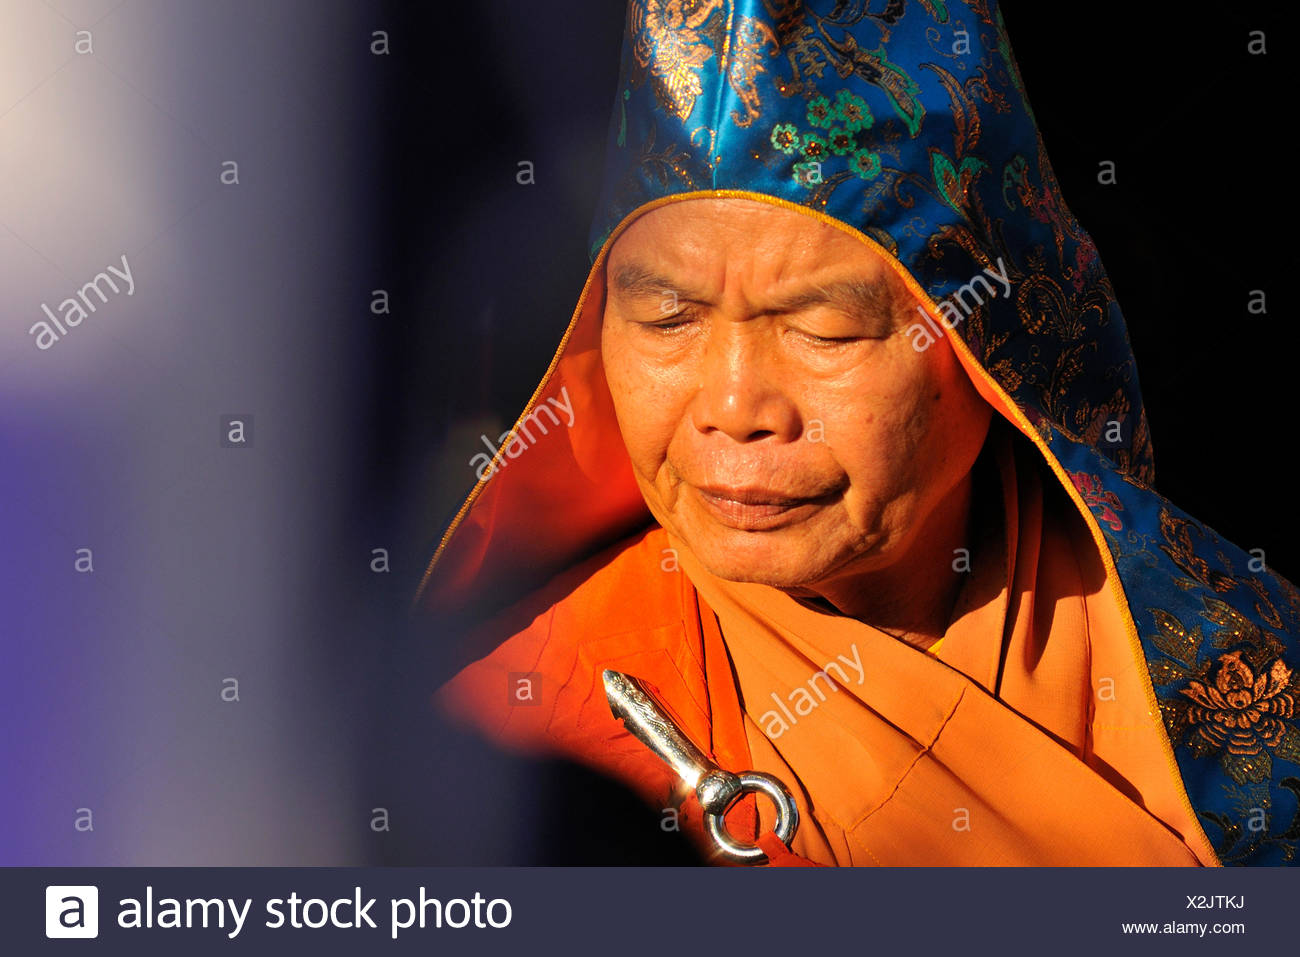 High priest at the most important festival of the Cham, Po Nagar temple, Nha Trang, Vietnam, Southeast Asia - Stock Image